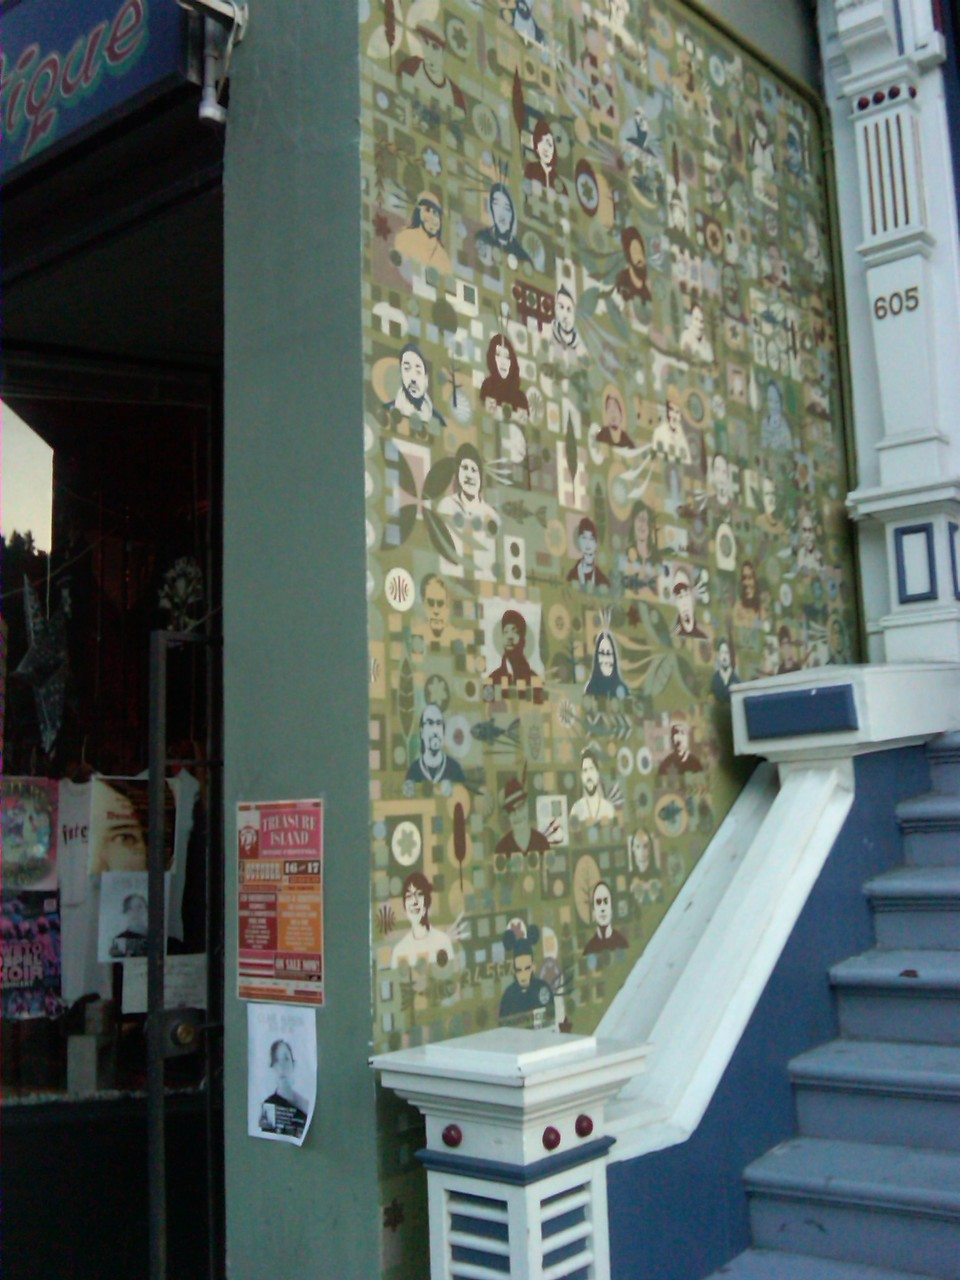 Lower Haight. All the portraits are people who work in the area & the mural is done by a local [SF] artist.